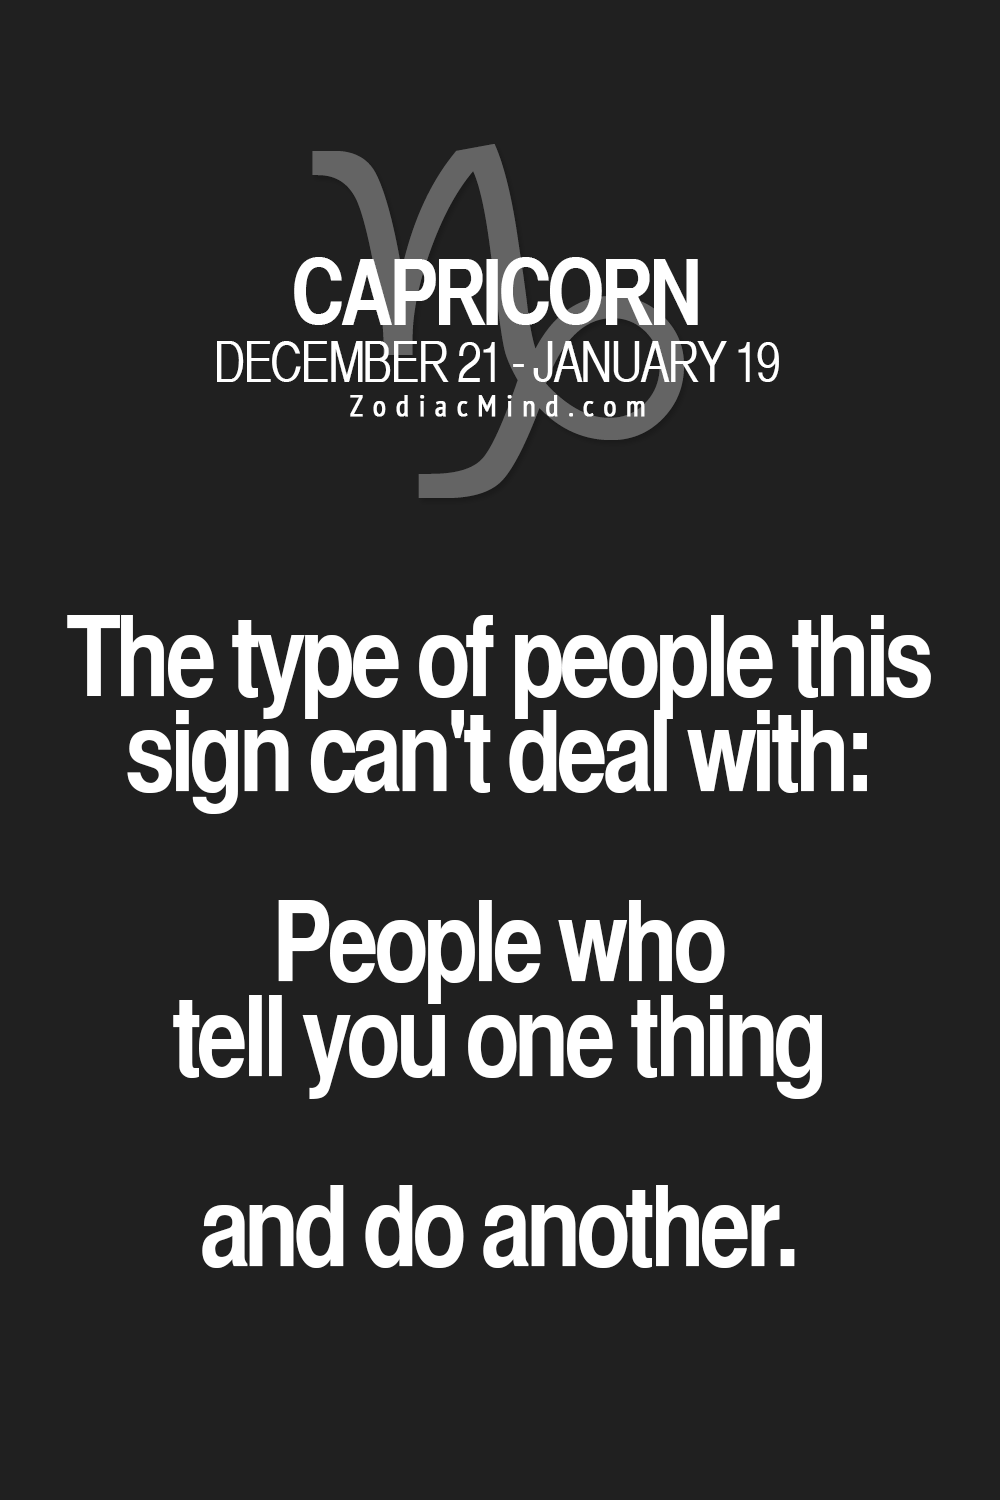 What Kidney Of Person Is A Capricorn